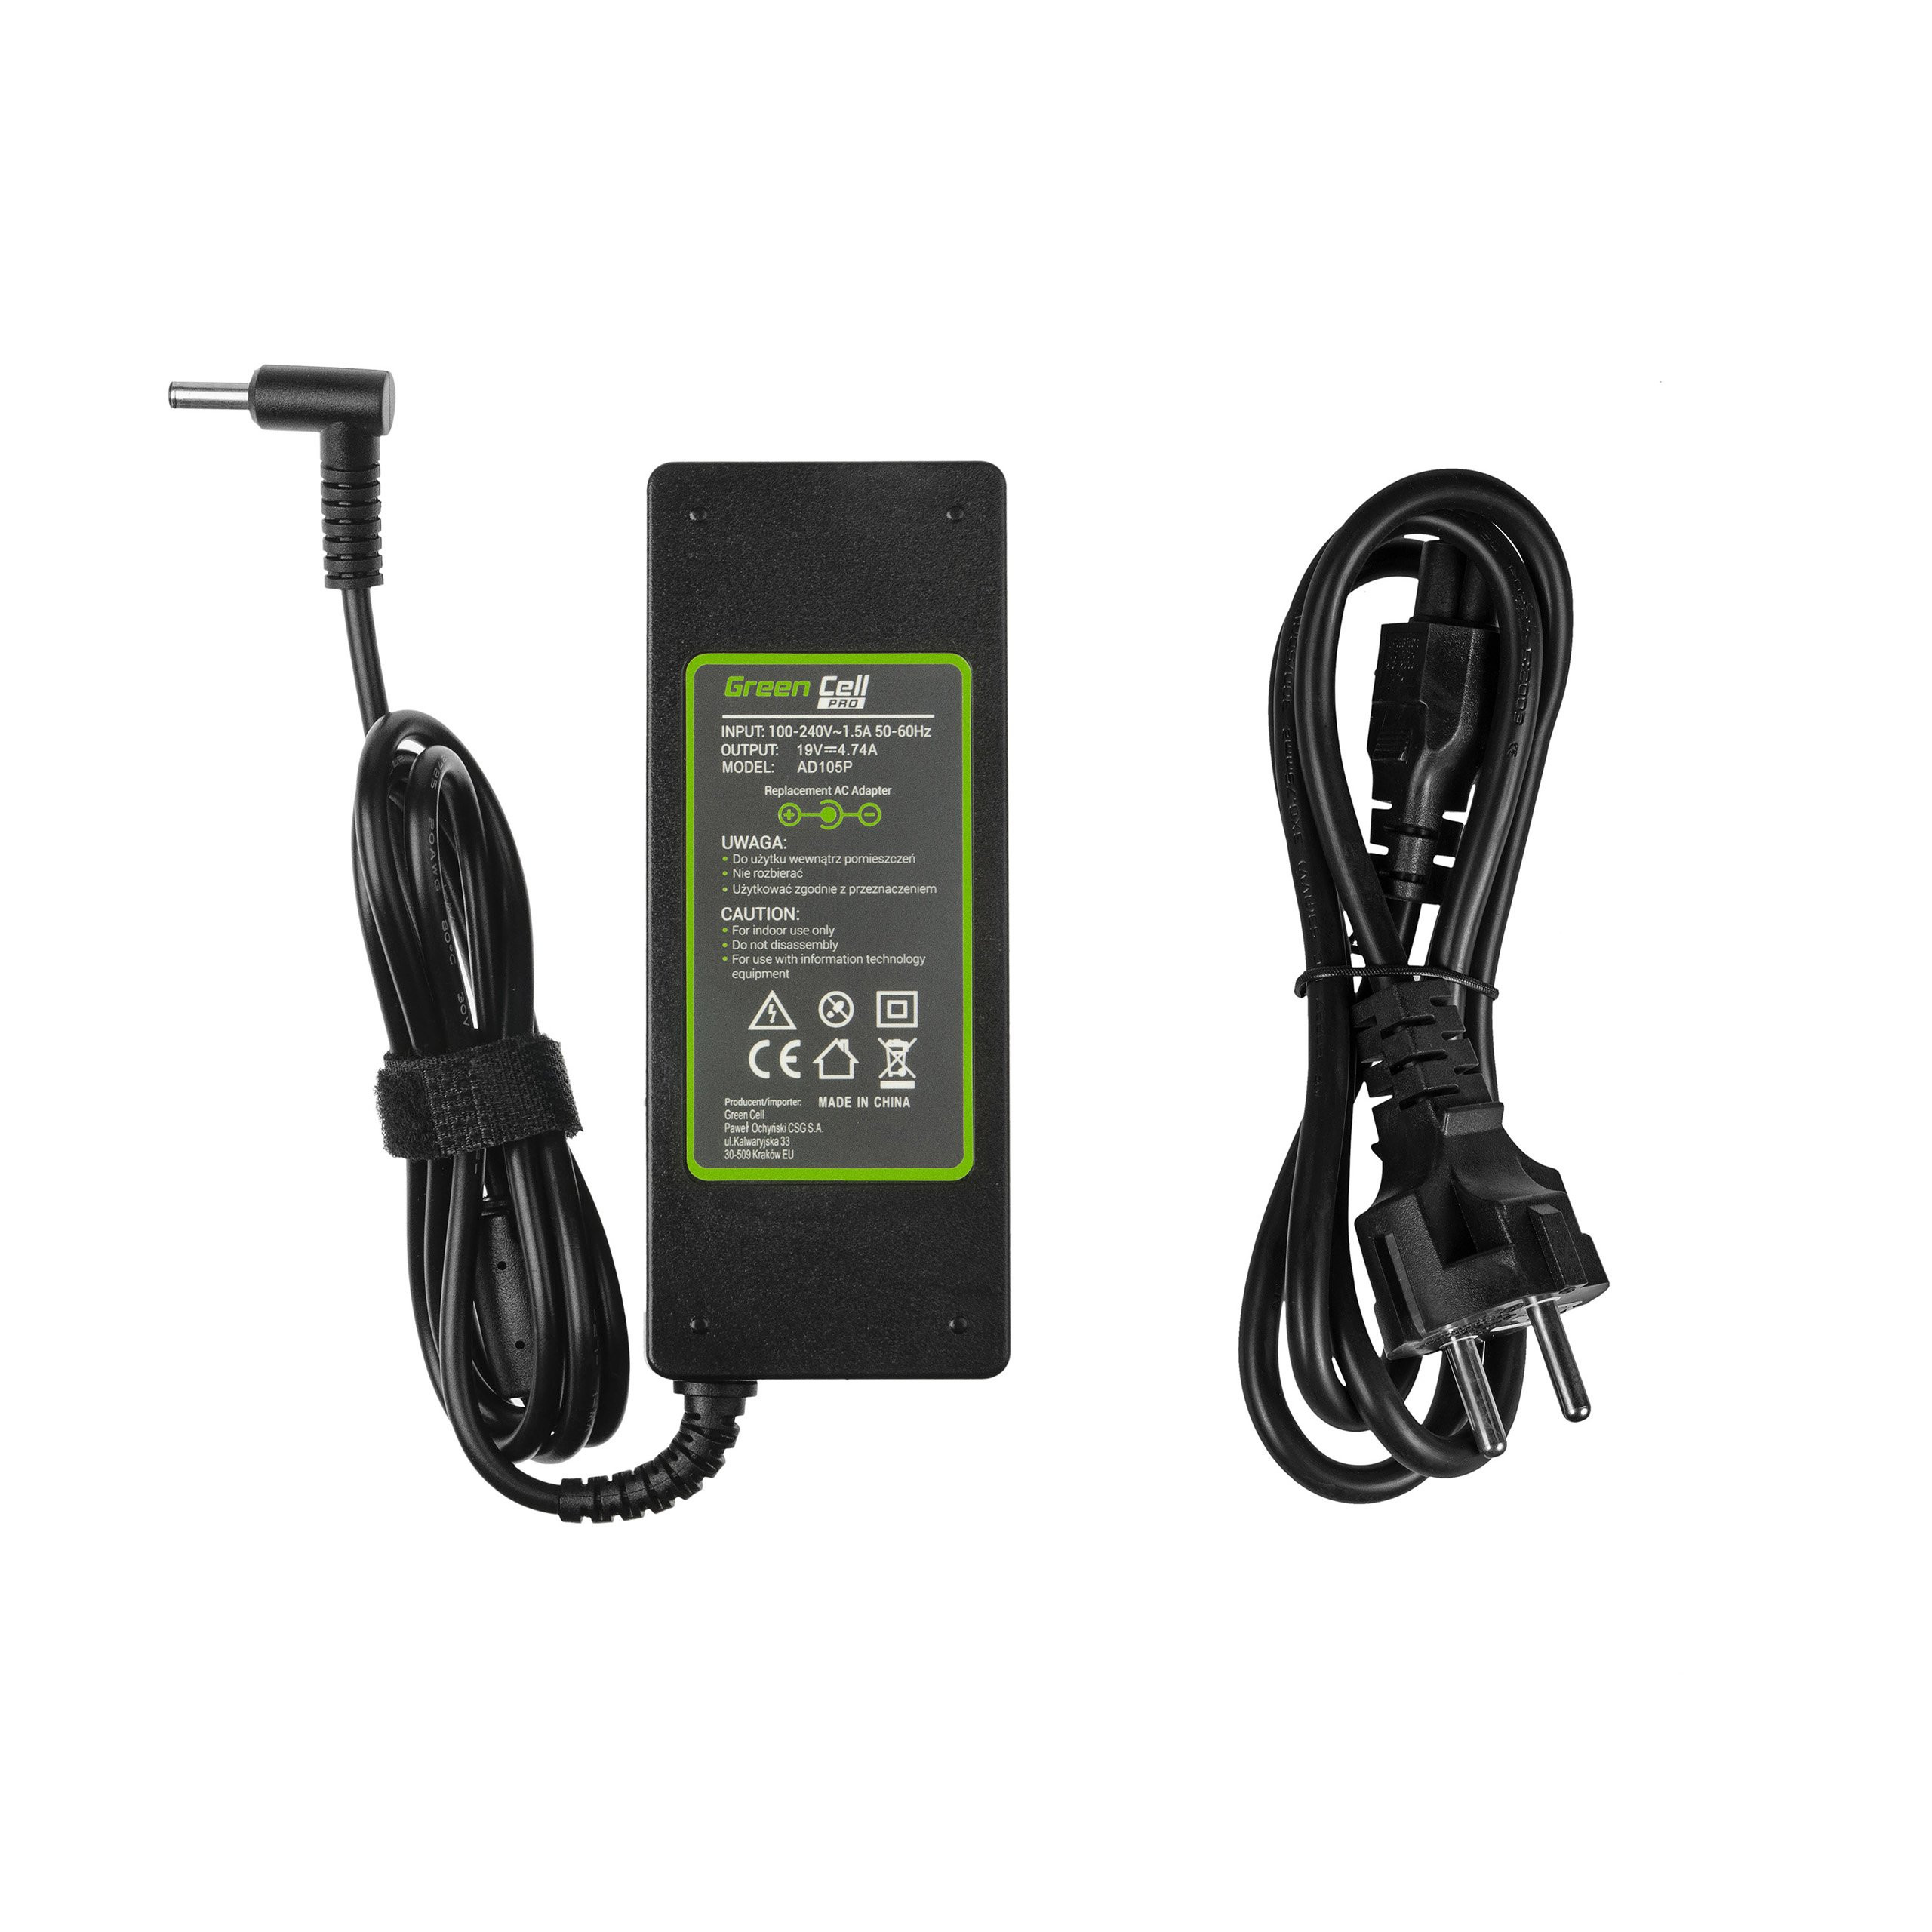 Green Cell PRO Charger AC Adapter 19V 4.74A 90W for AsusPRO B8430U P2440U P2520L P2540U P4540U P5430U Asus Zenbook UX51VZ